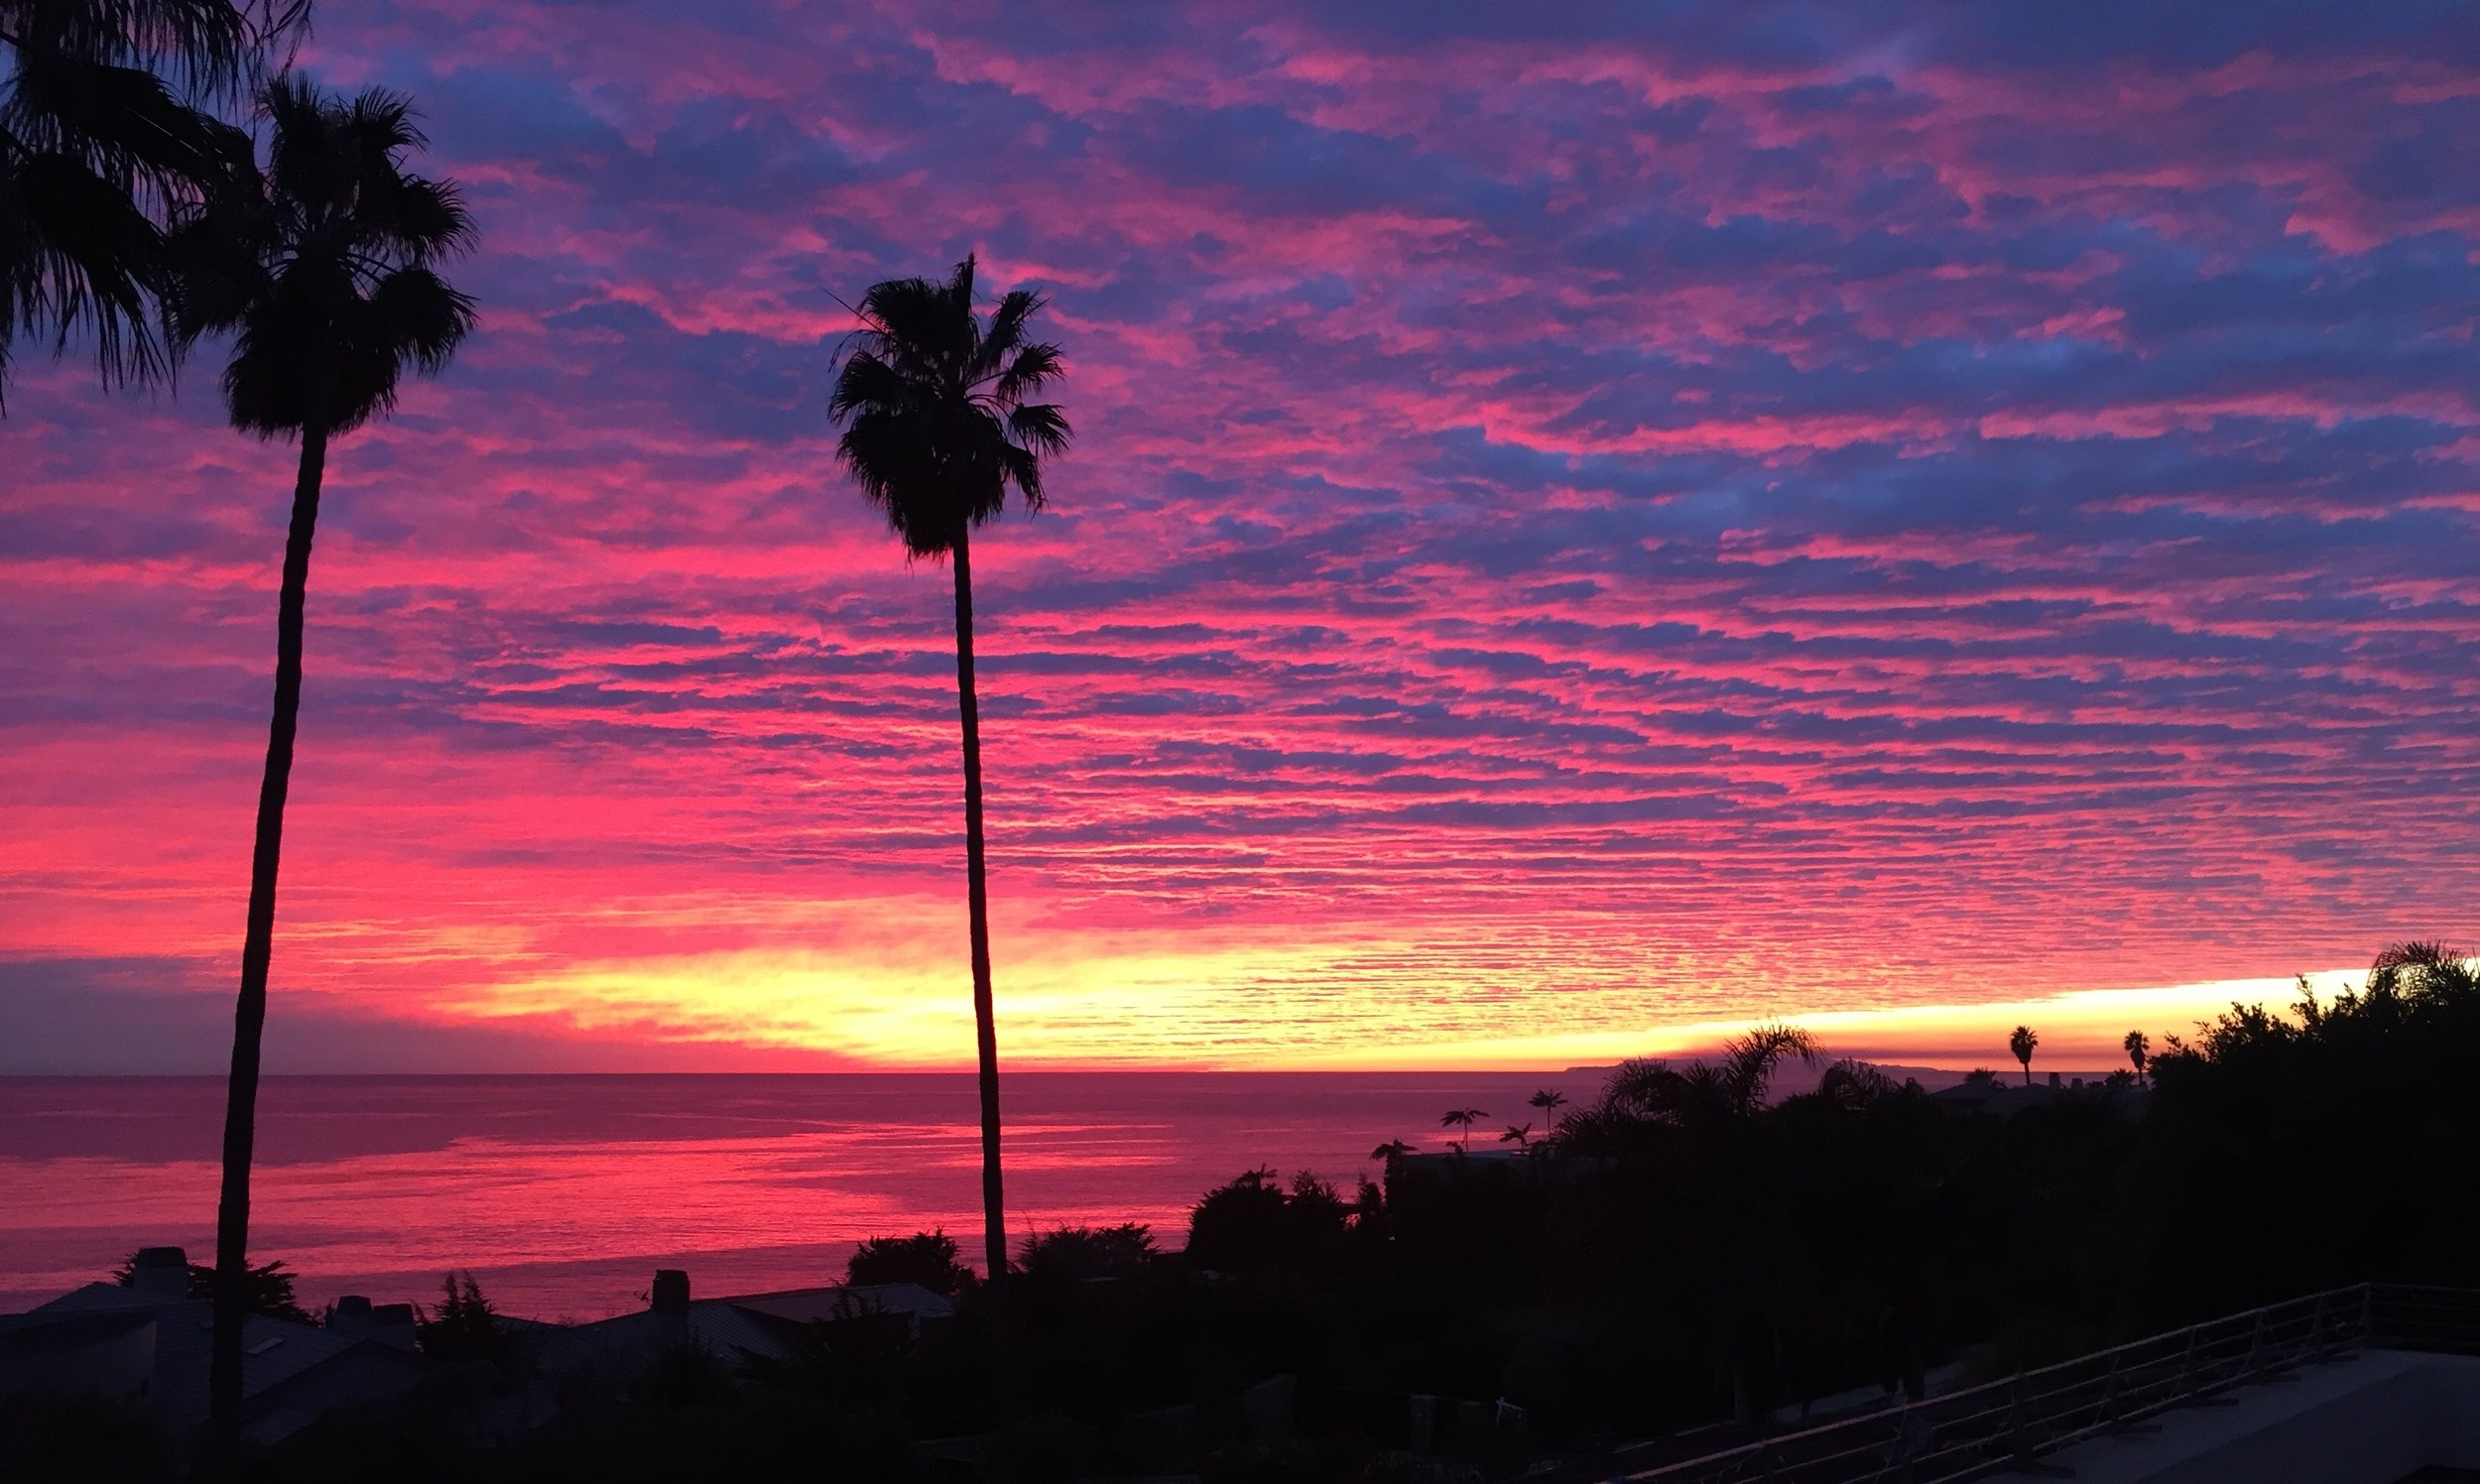 Sunset over the Pacific Ocean and the Channel Islands - Malibu, CA